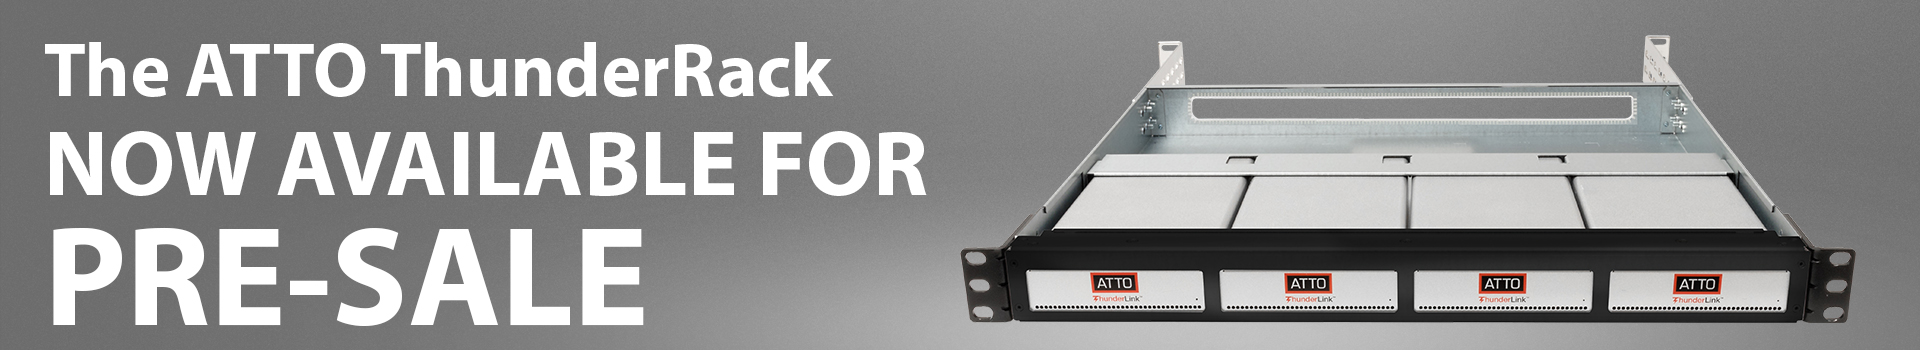 The ATTO ThunderRack NOW AVAILABLE FOR PRE-SALE